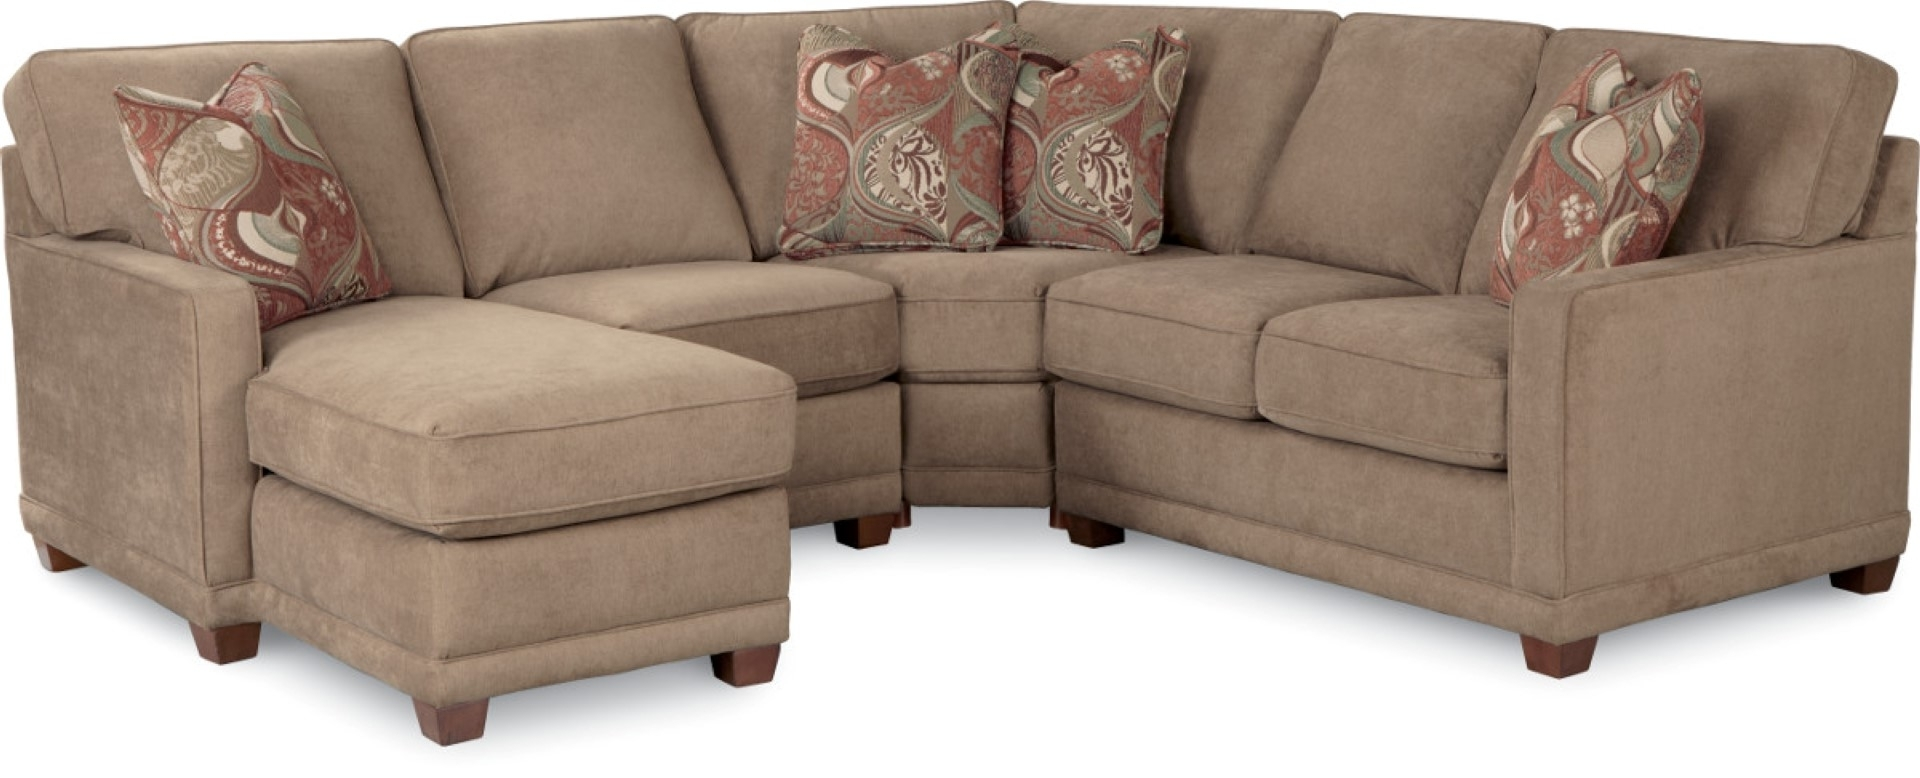 Best And Newest Sectional Sofas At Bad Boy With Regard To Kennedy Sectional Sofa – Town & Country Furniture (View 16 of 20)